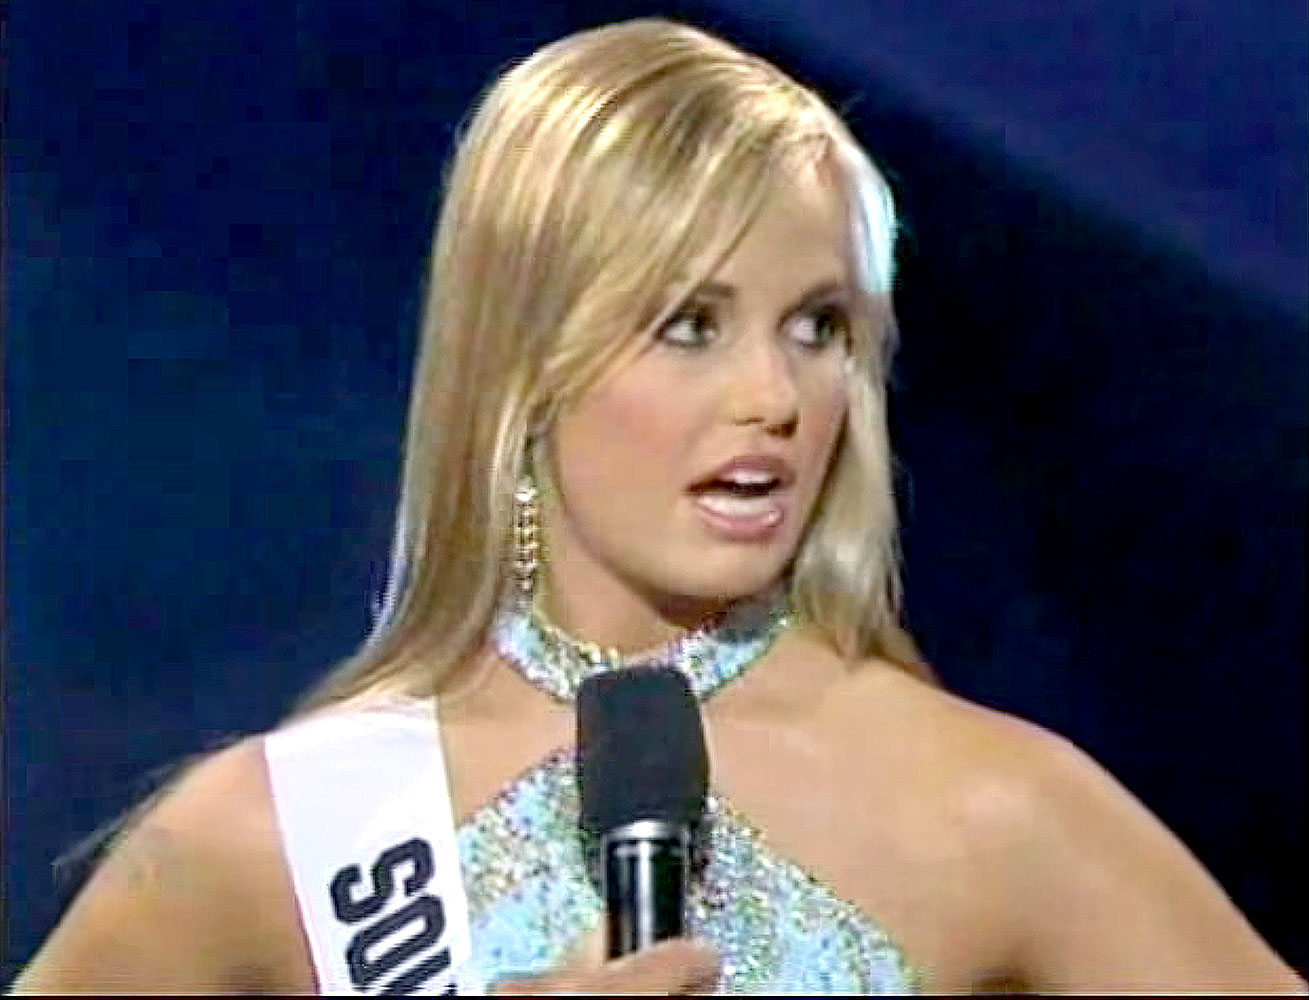 Miss south carolina teen usa contemplated suicide after pageant flub biggest mistakes on live tv caite upton gumiabroncs Images